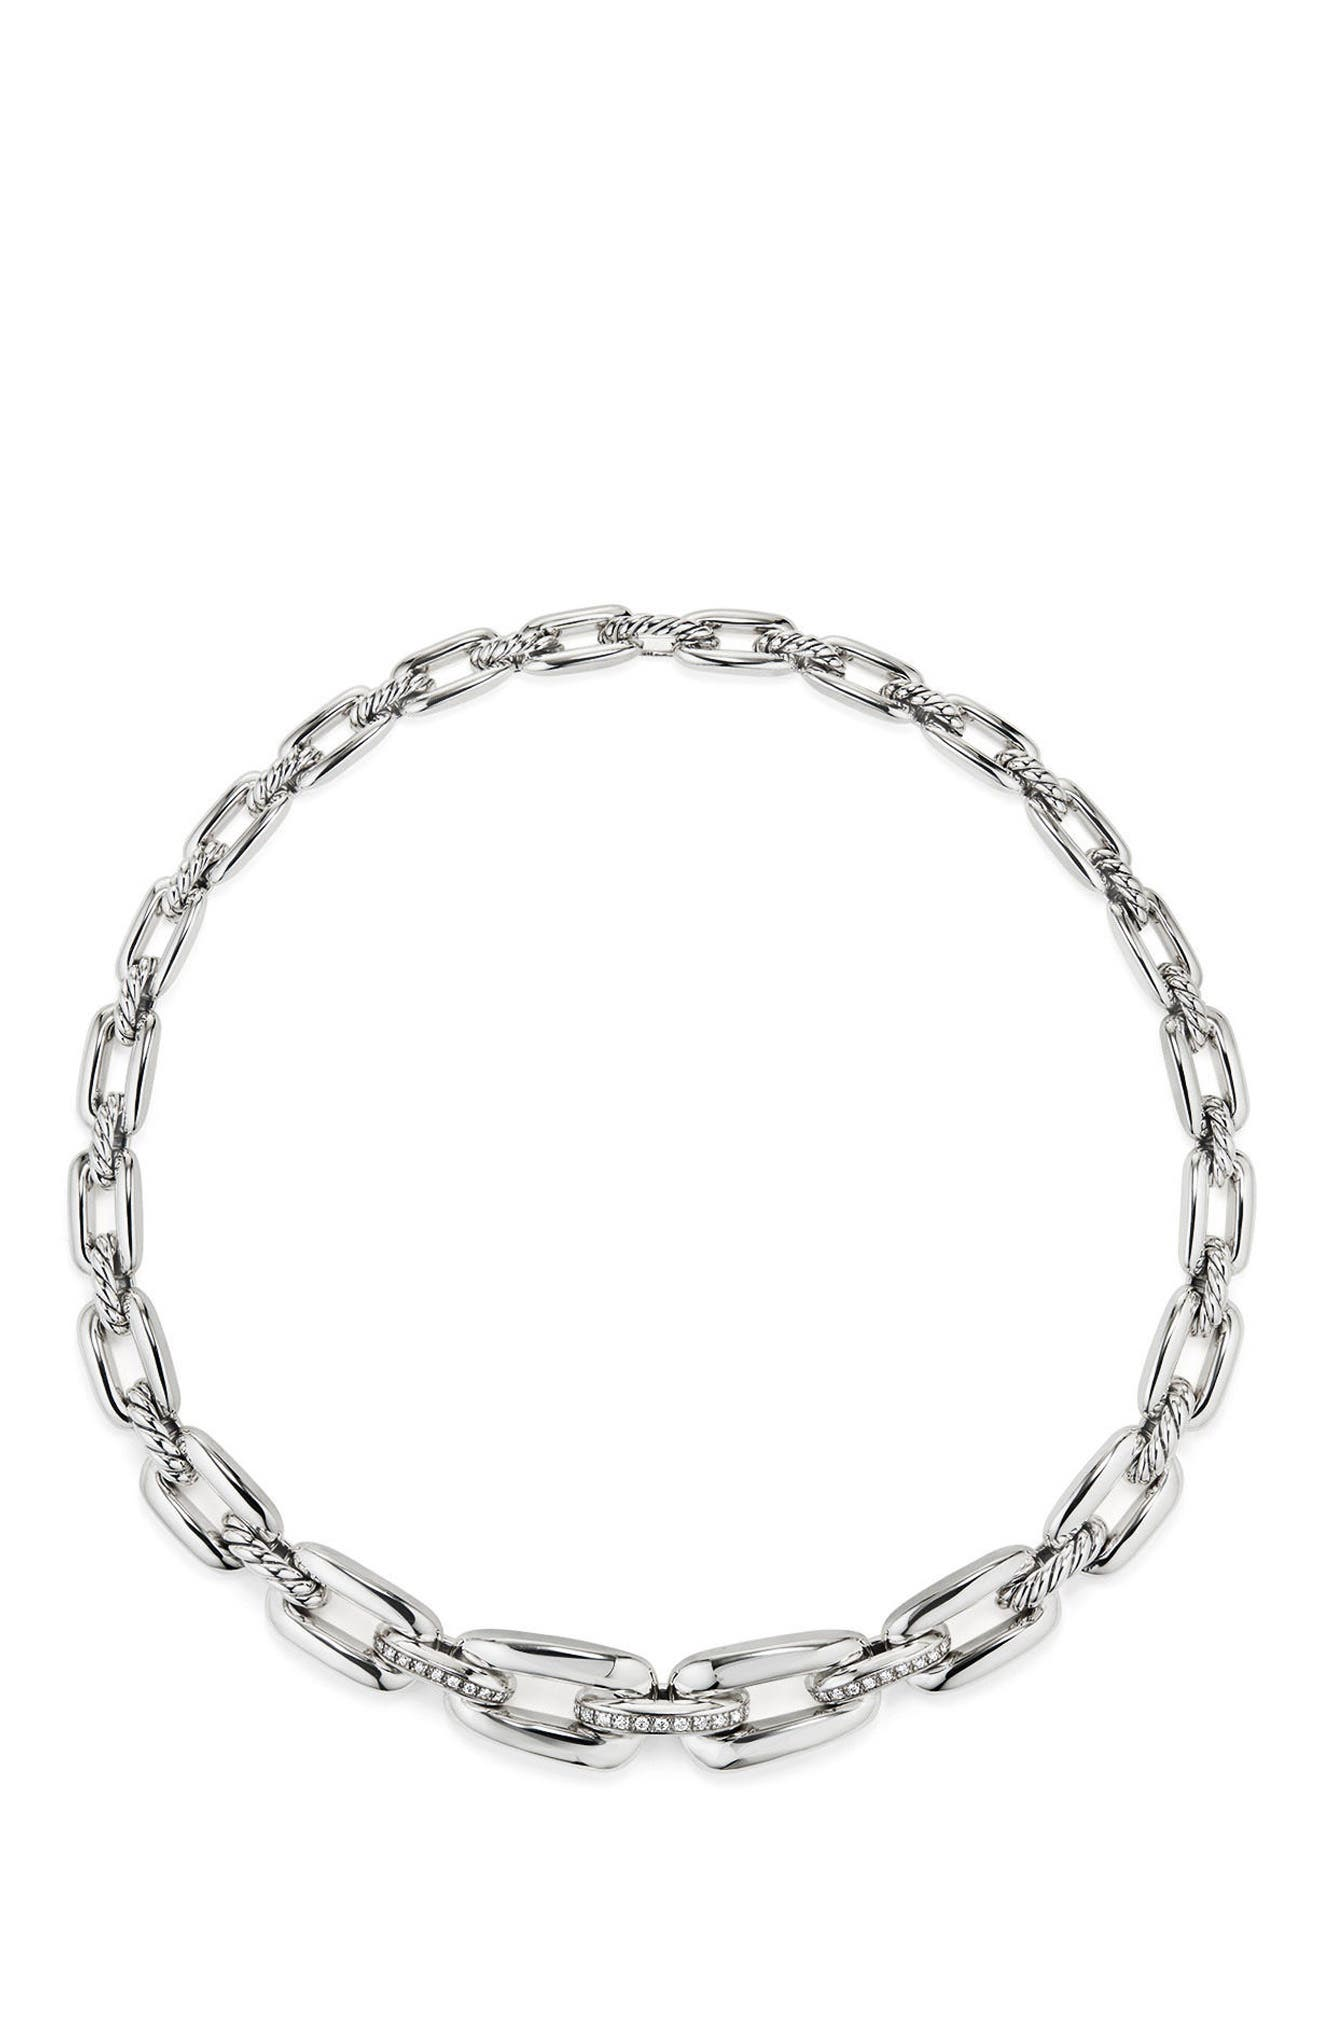 Wellesley Short Chain Necklace with Diamonds,                             Alternate thumbnail 2, color,                             SILVER